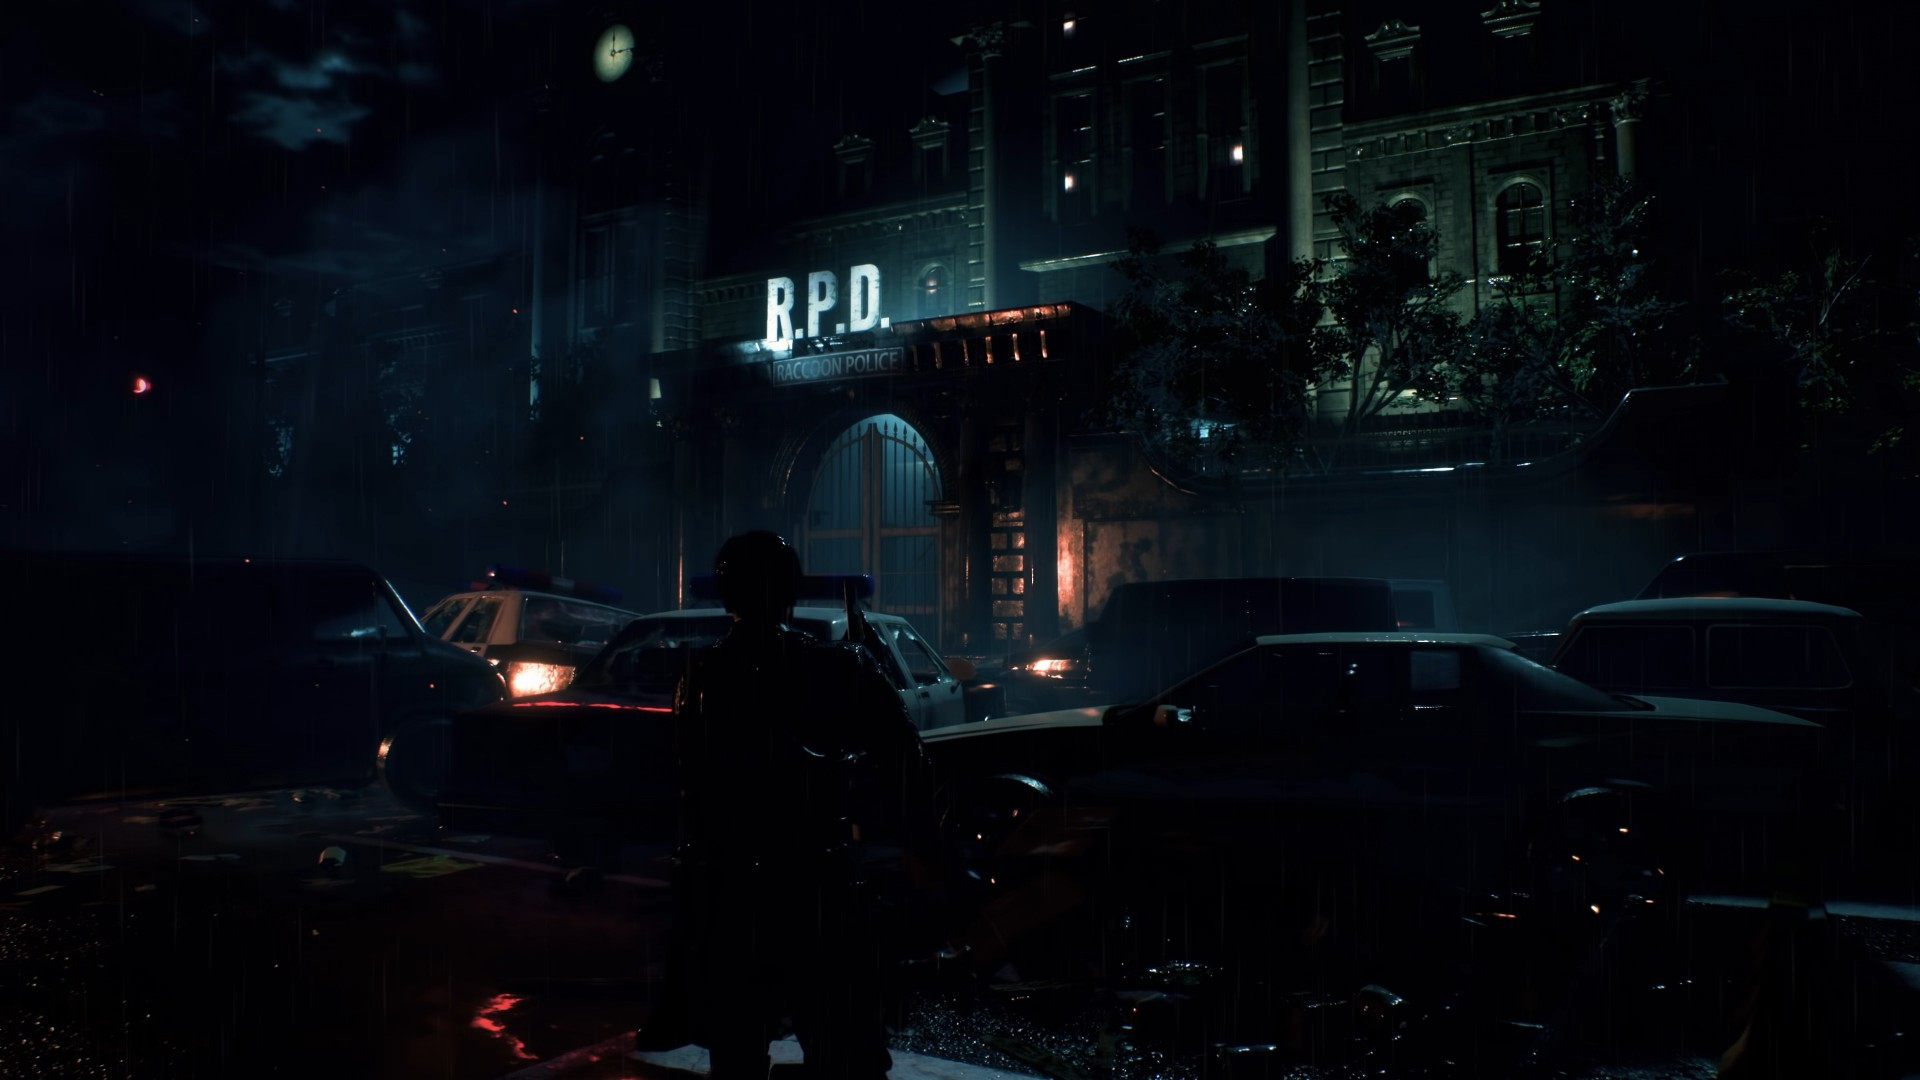 Hd Wallpaper Police Cars Wallpaper Resident Evil 2 E3 2018 Screenshot 4k Games